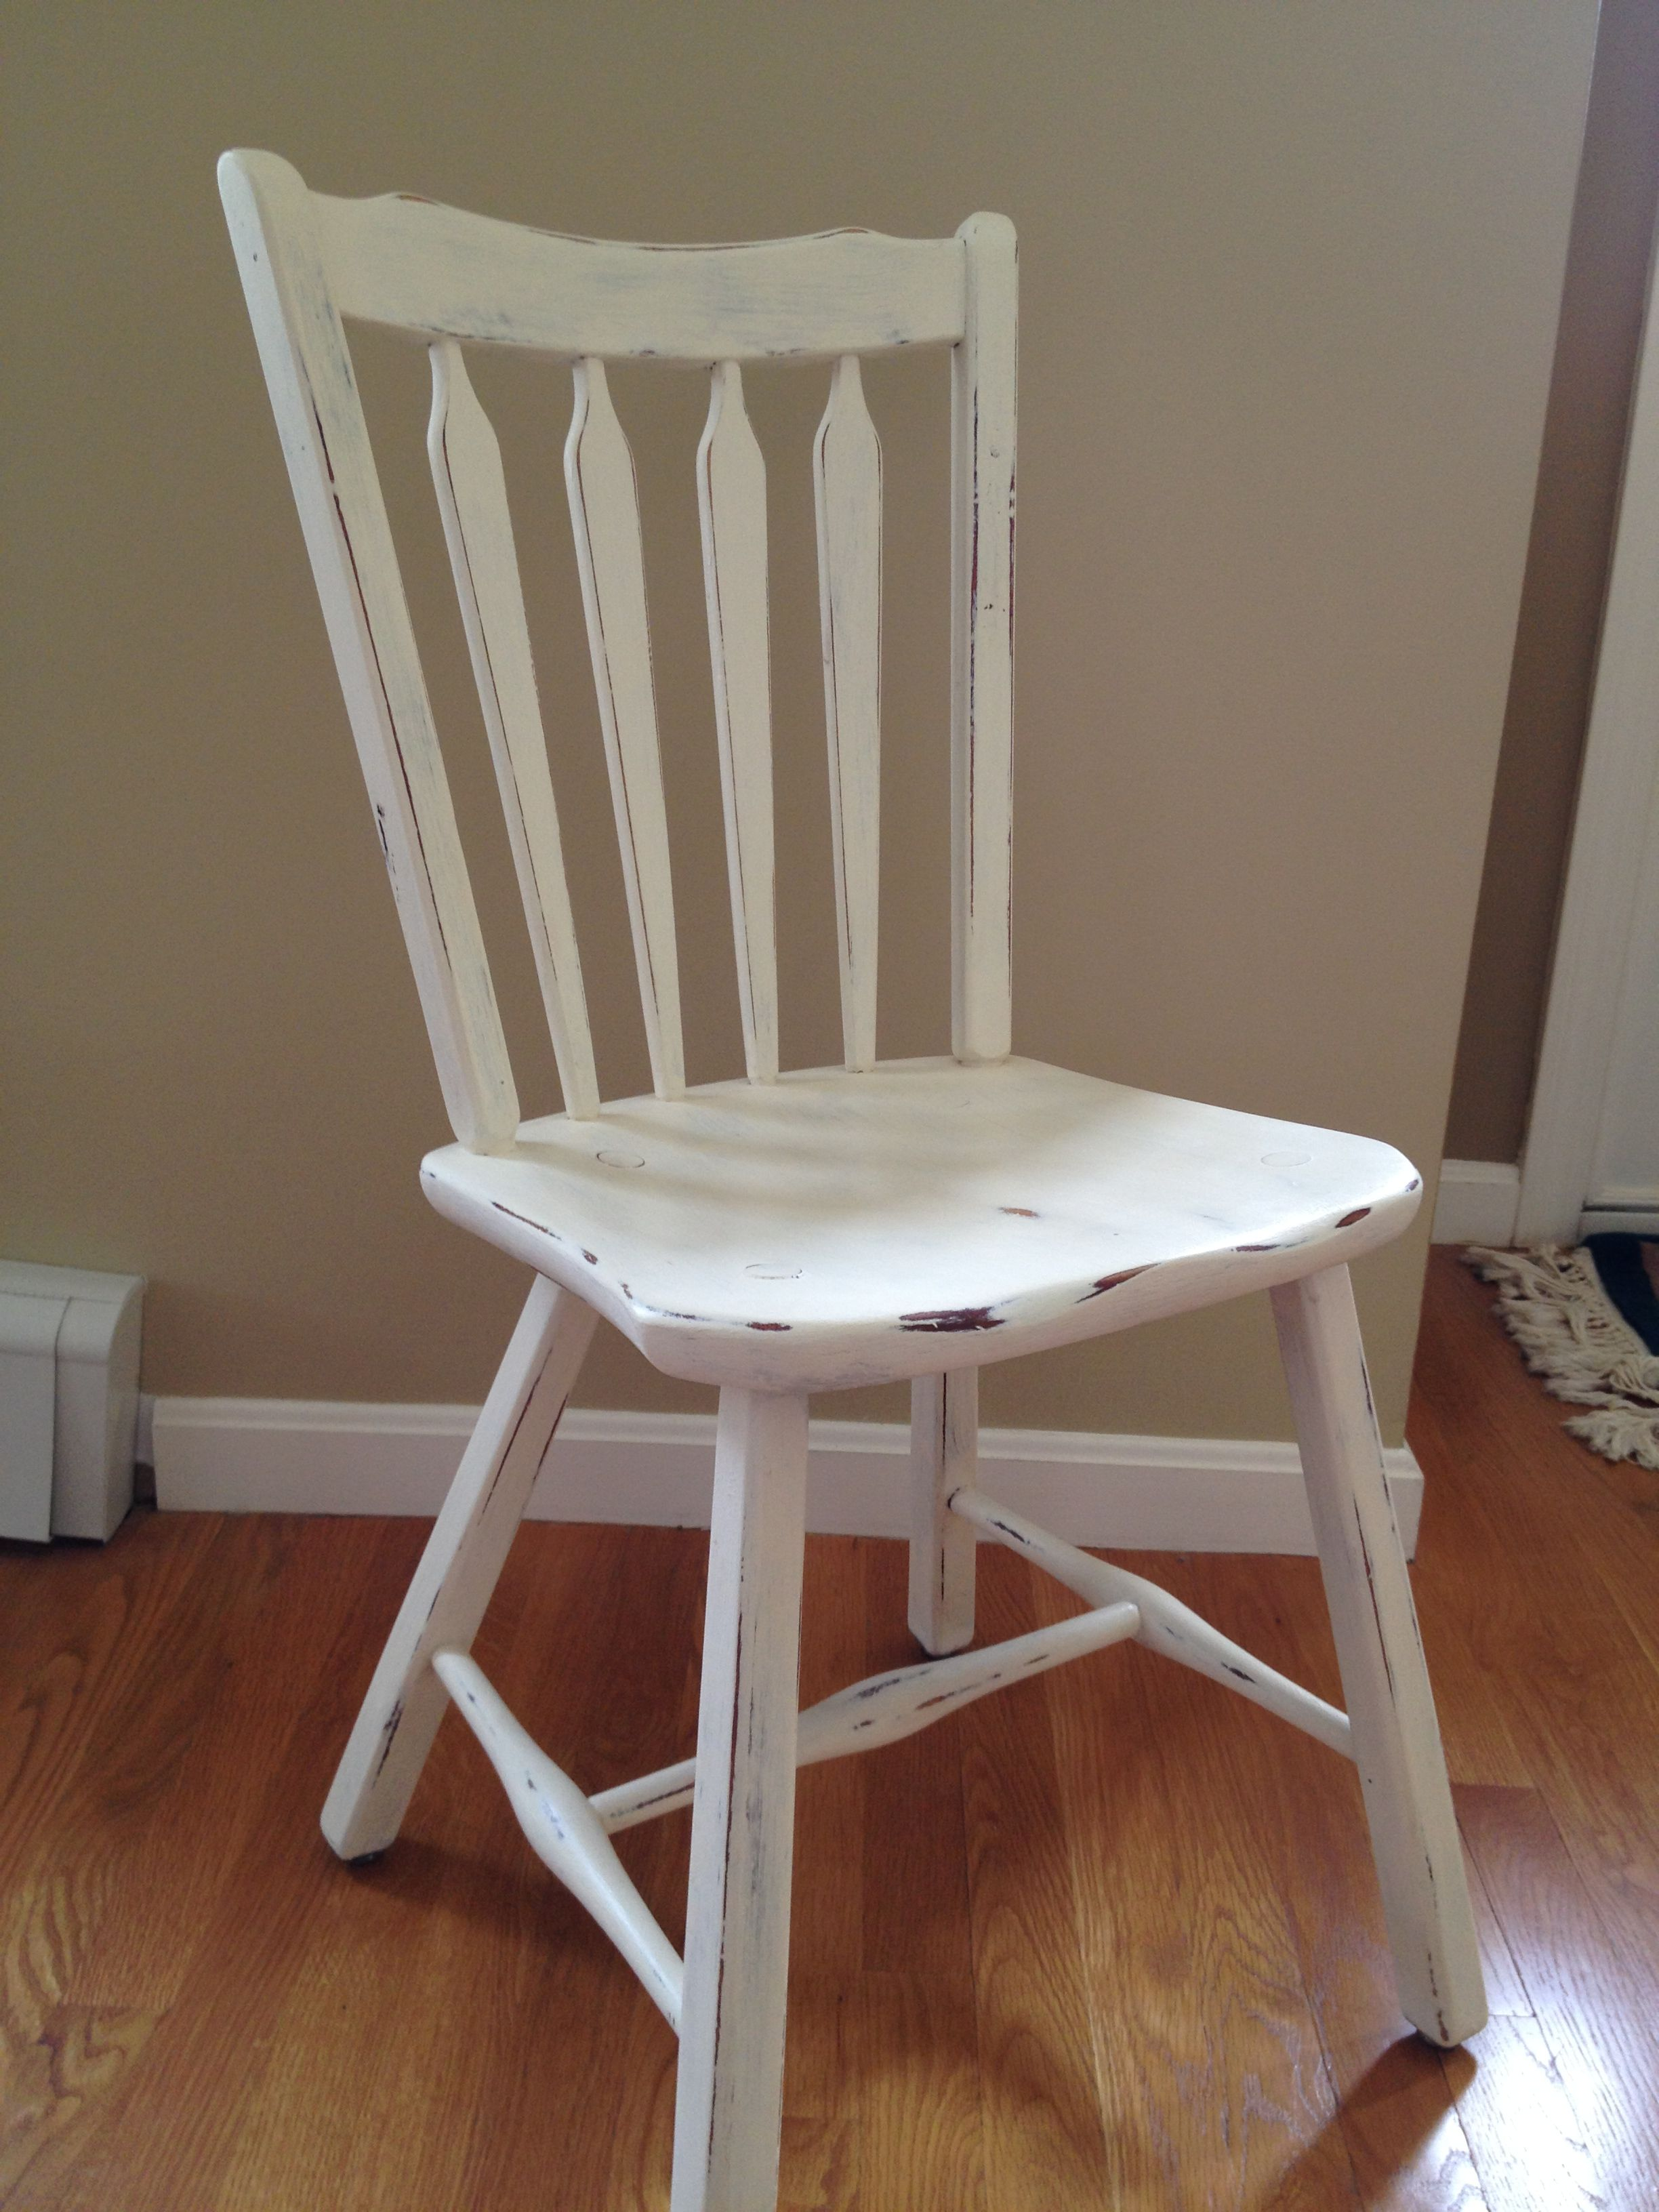 Desk Chair Painted With Annie Sloan Chalk Paint Old White Distressed Cottage Furniture Furniture Chair